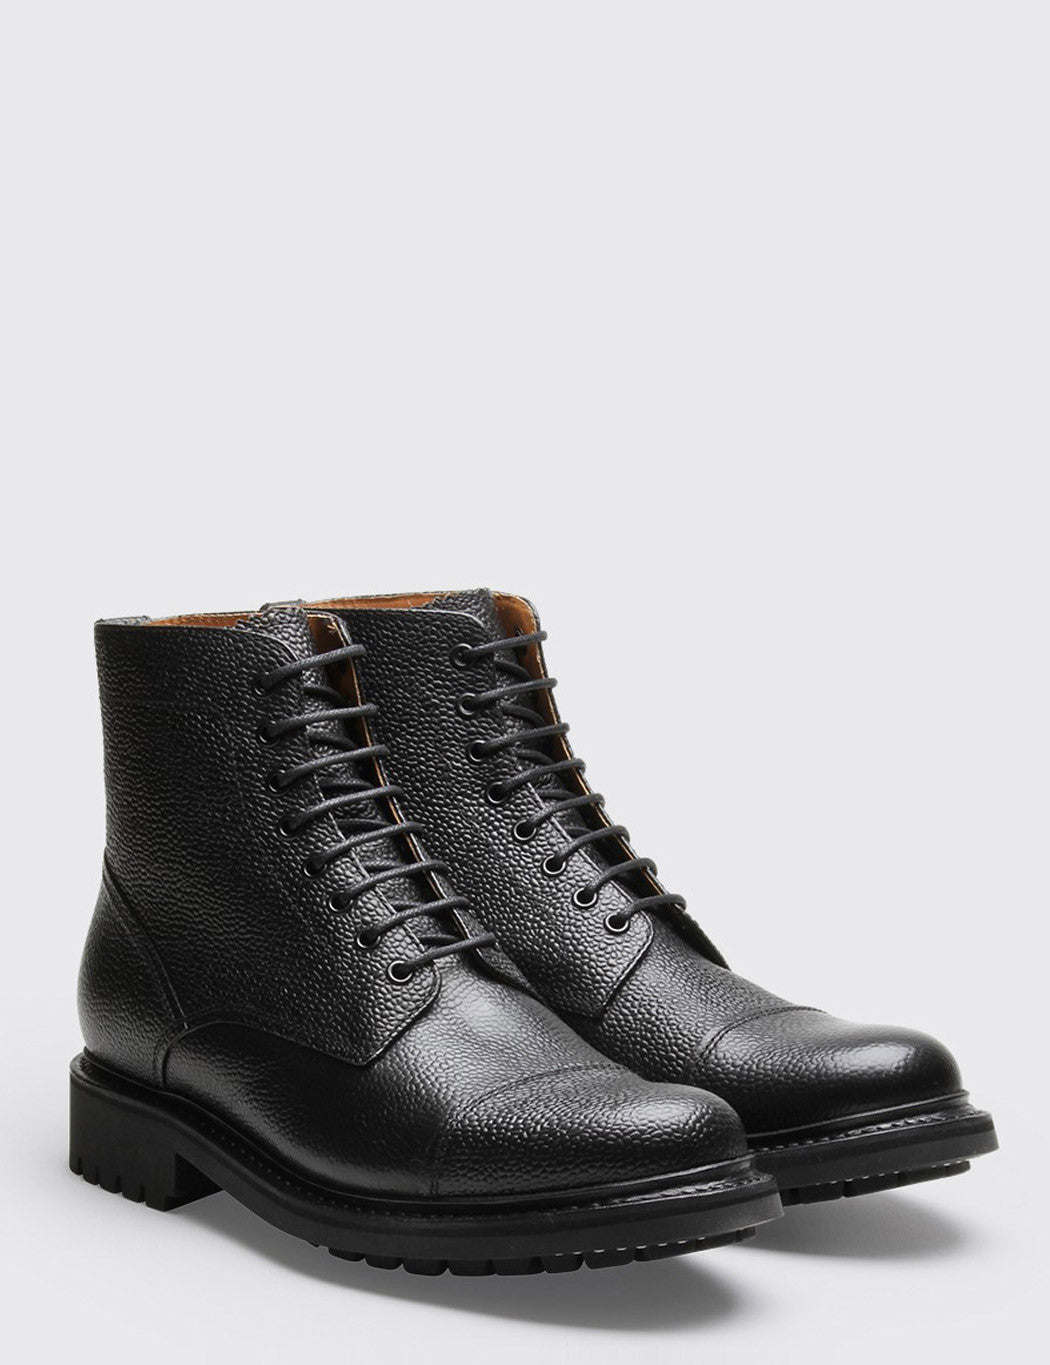 Grenson Joseph Boot (Grain) - Black | URBANEXCESS.